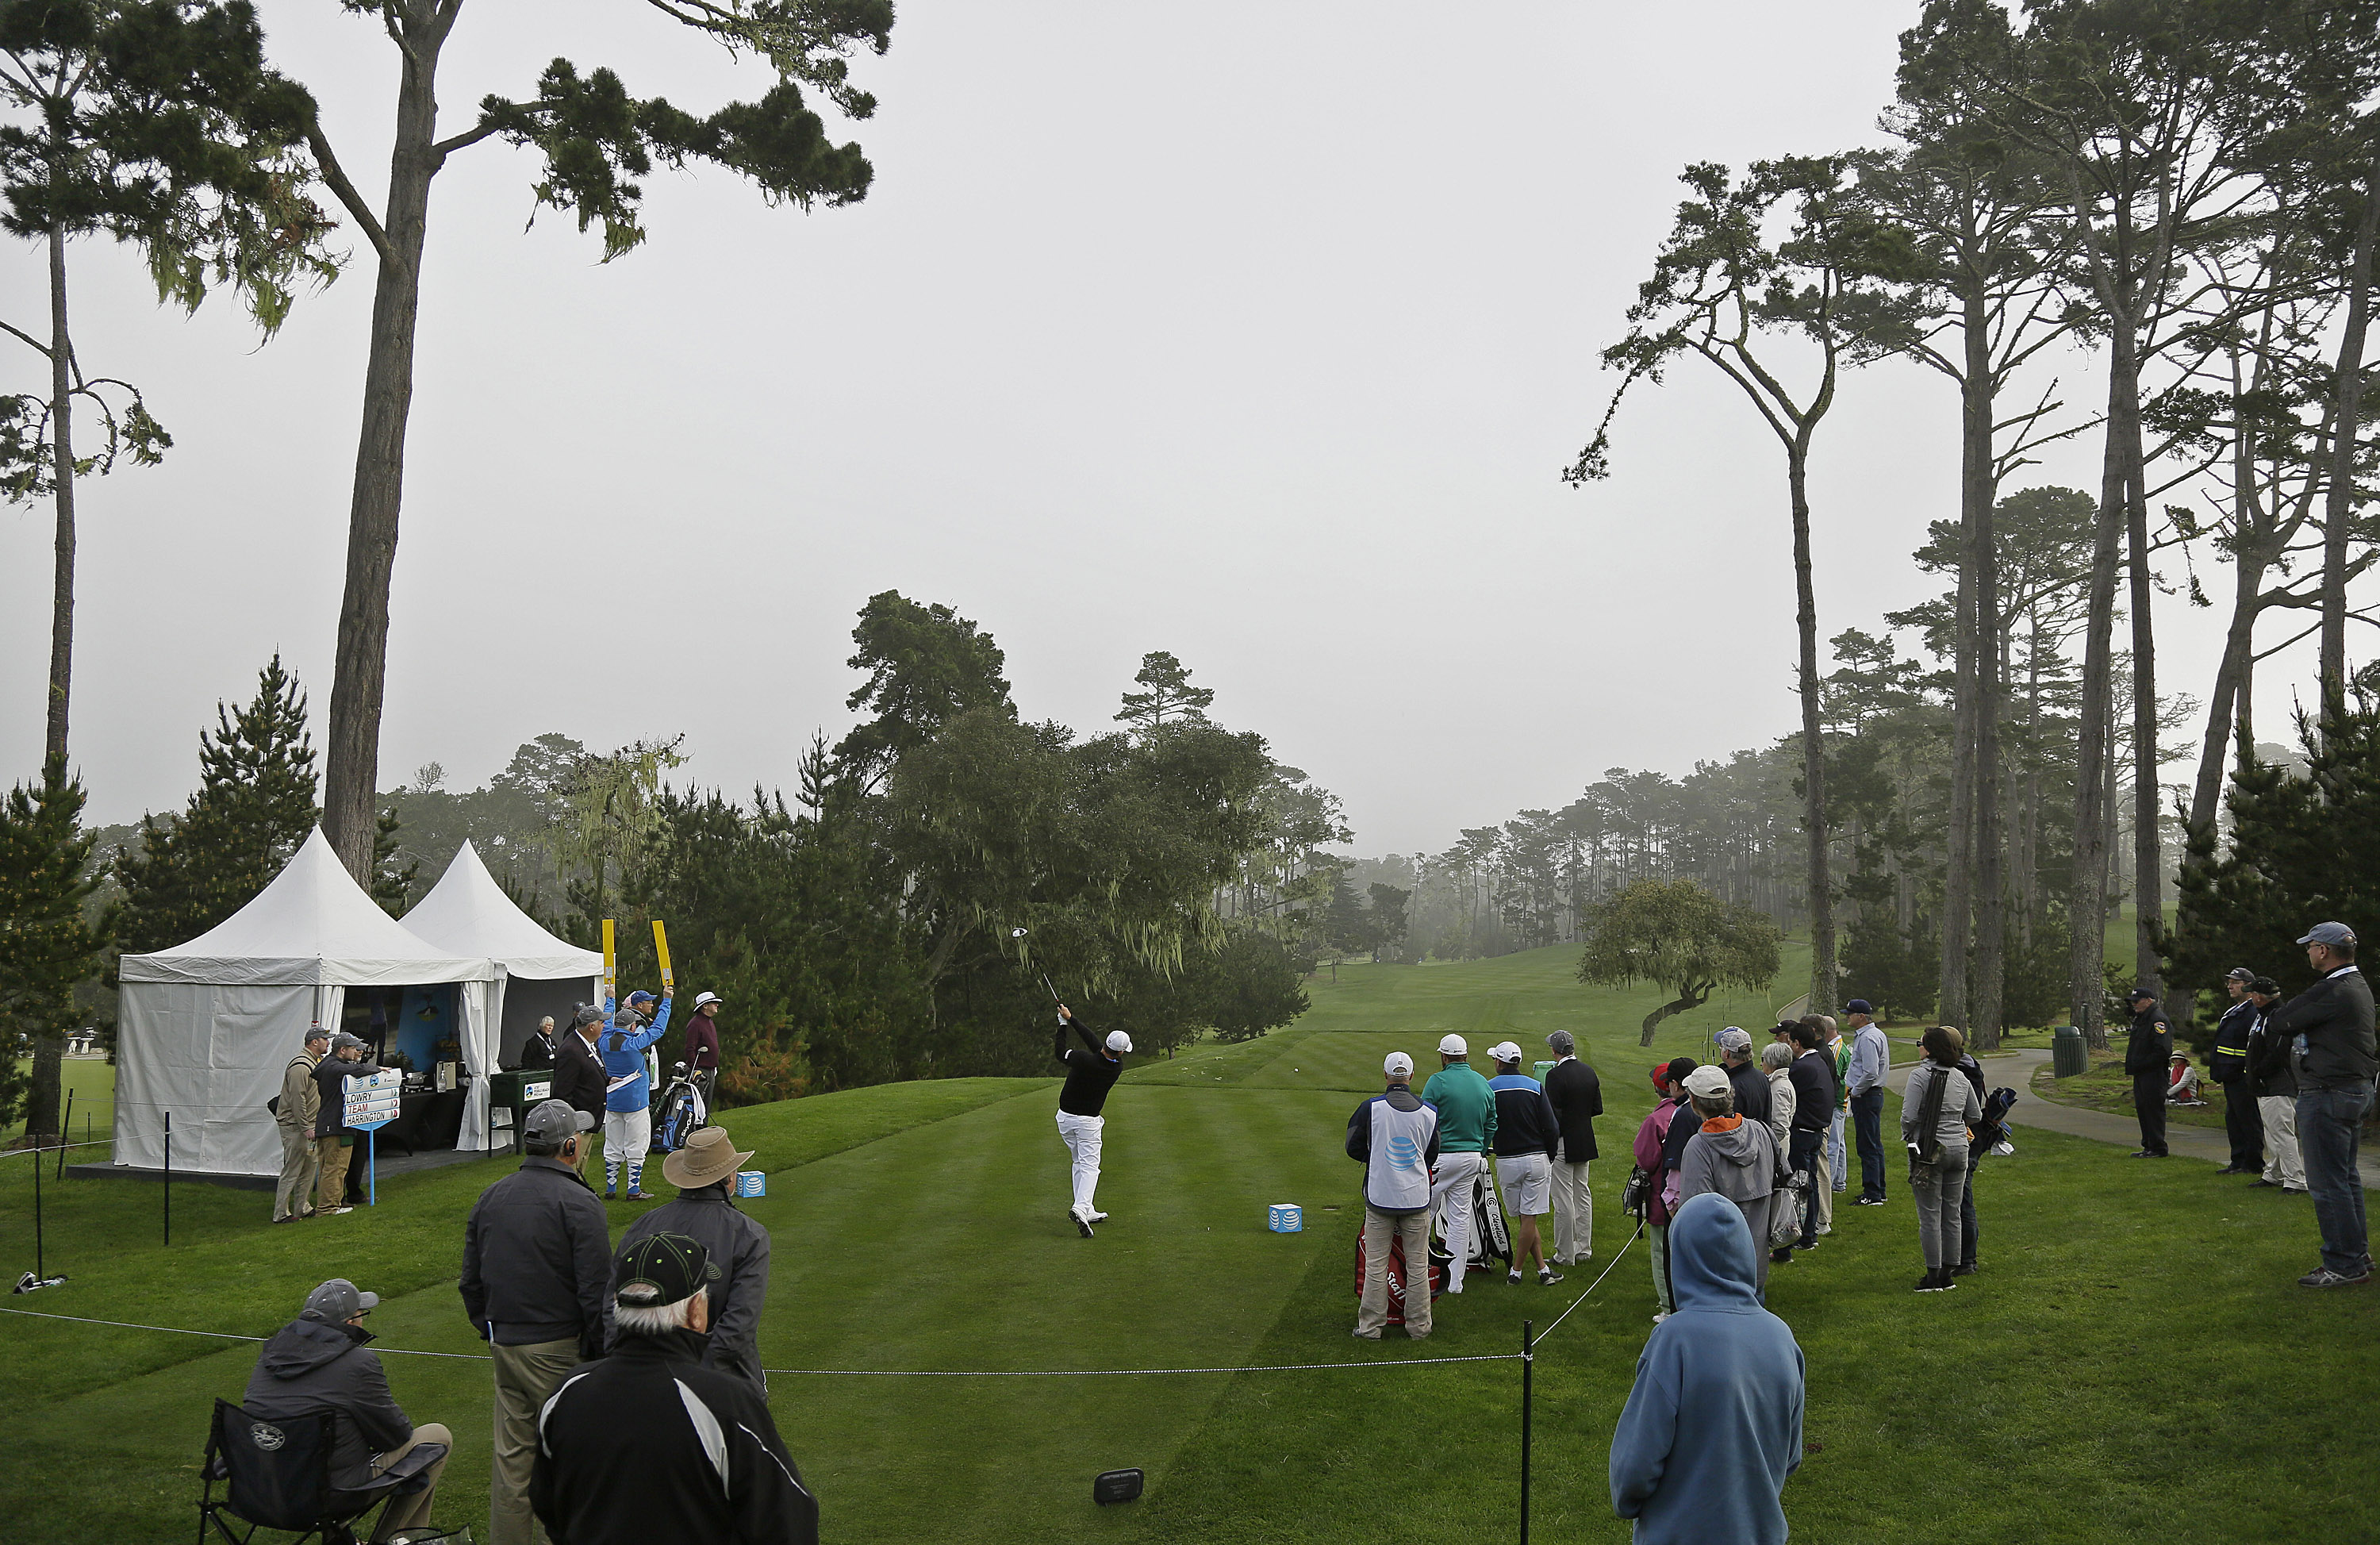 Padraig Harrington, of Ireland, hits from the 10th tee of the Spyglass Hill Golf Course during the third round of the AT&T Pebble Beach National Pro-Am golf tournament Saturday, Feb. 13, 2016, in Pebble Beach, Calif. (AP Photo/Eric Risberg)